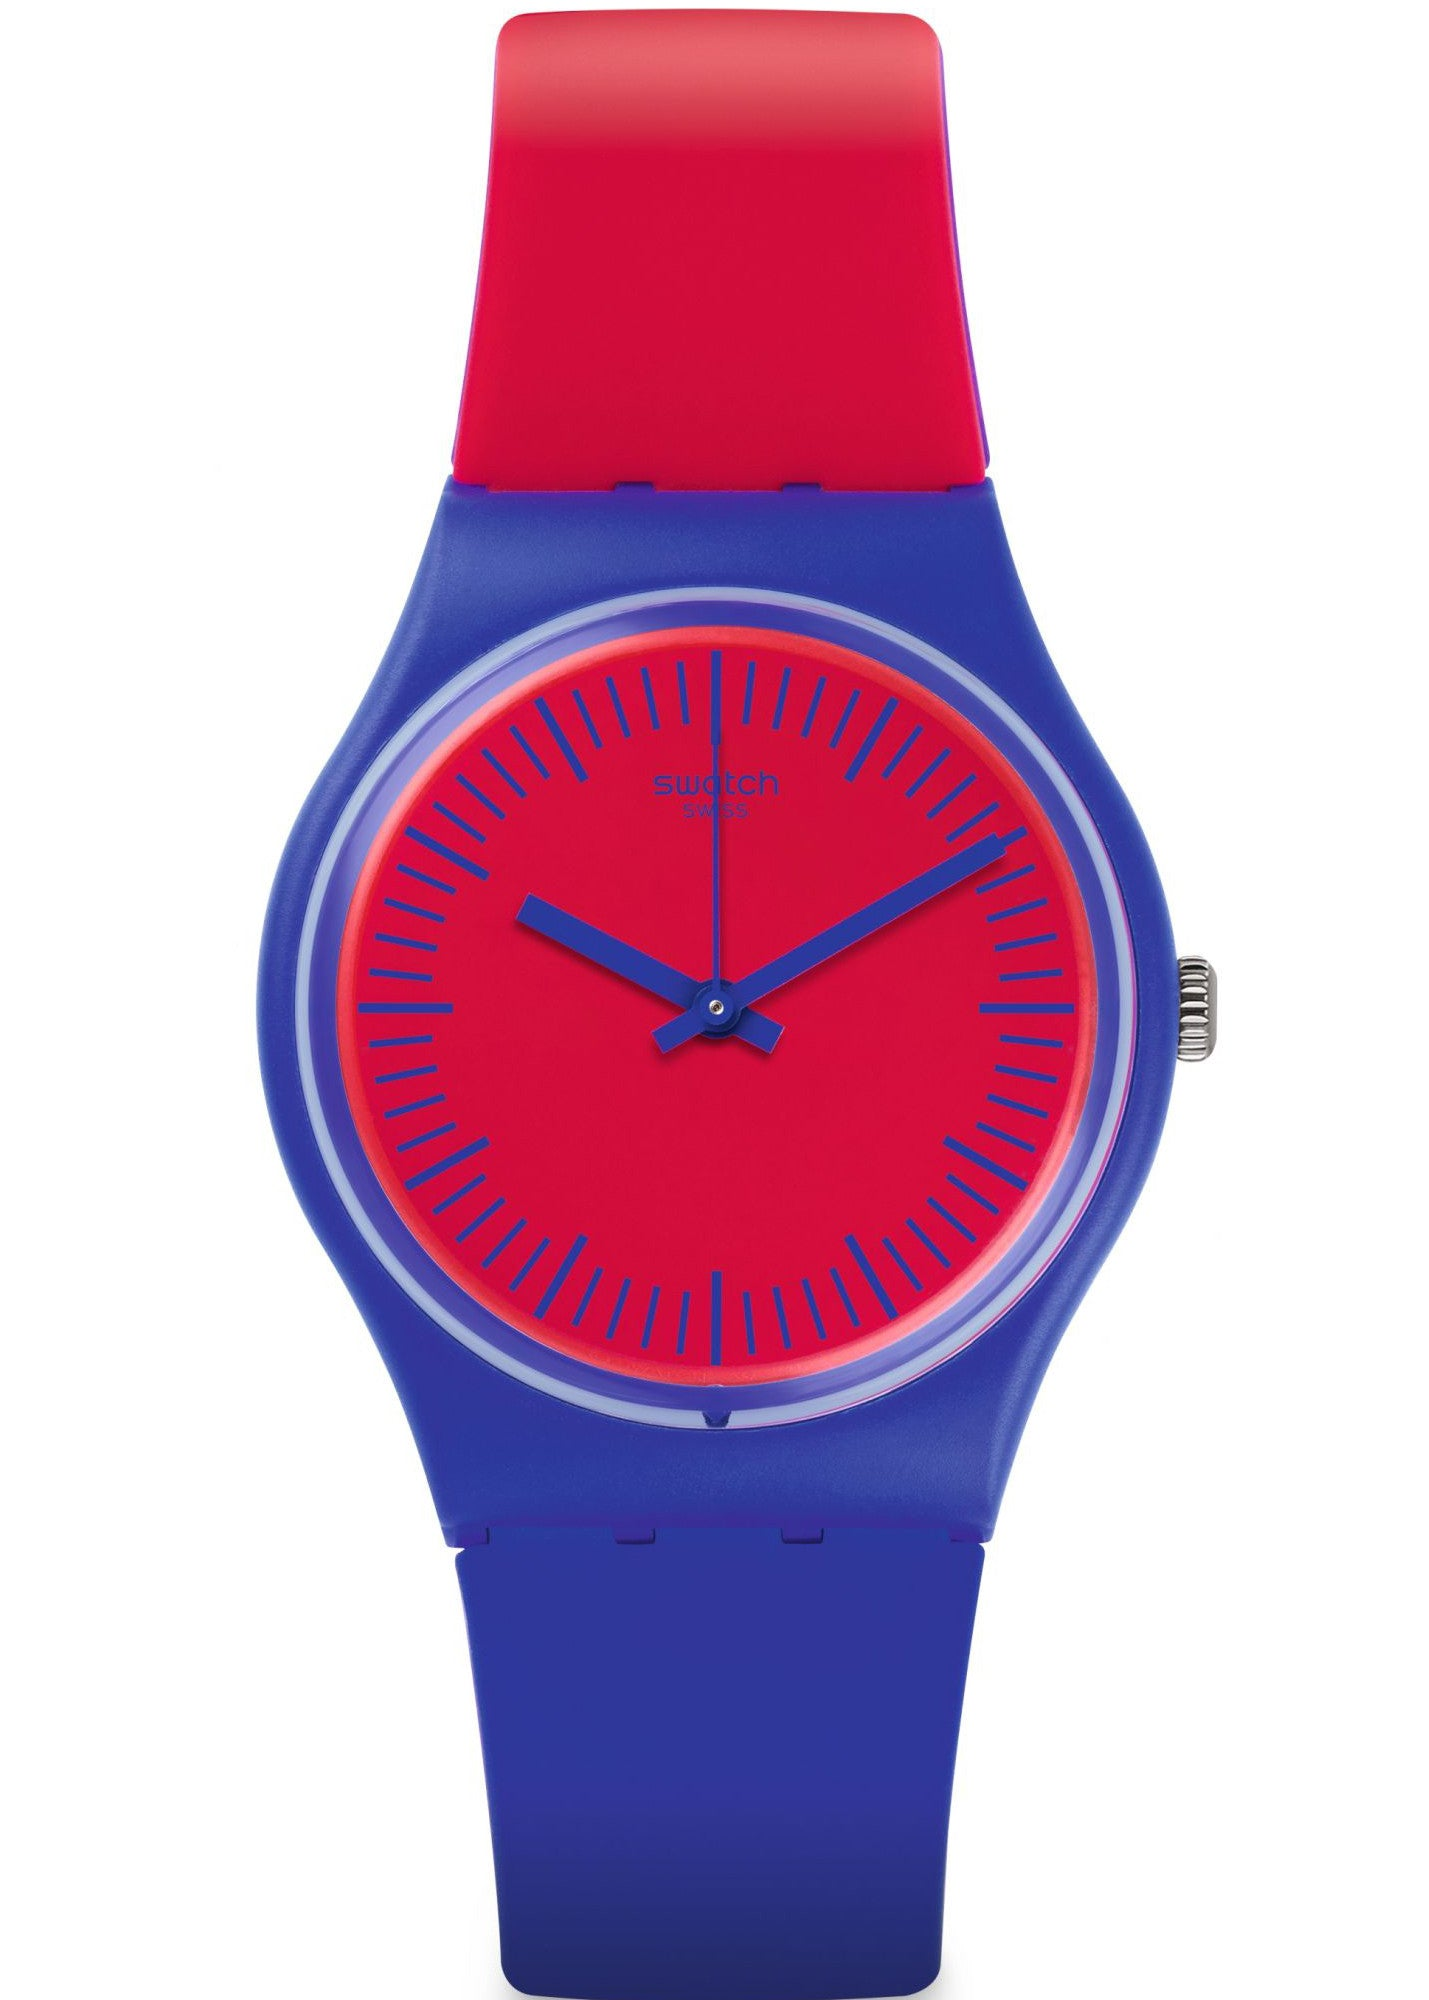 Swatch Blue Loop Unisex Watch